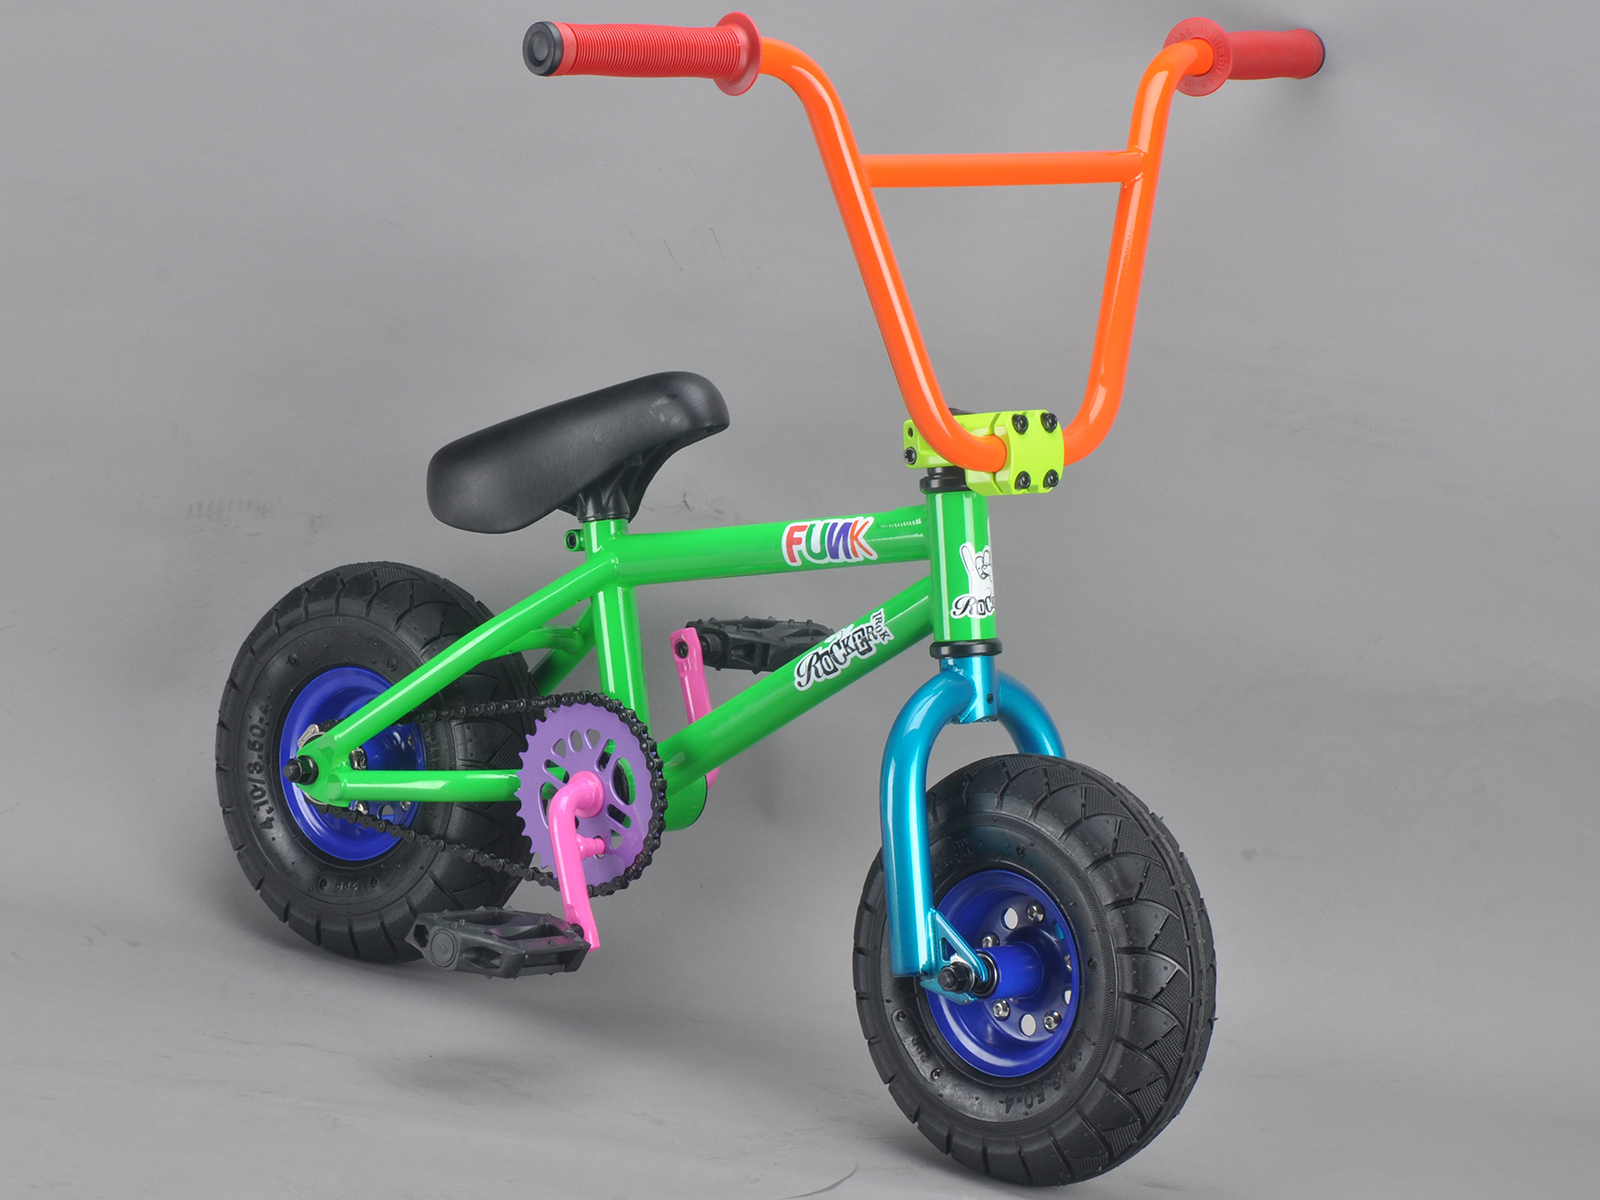 http://rockerbmx.com/images/stories/virtuemart/product/FUNKIROK0137%205.jpg